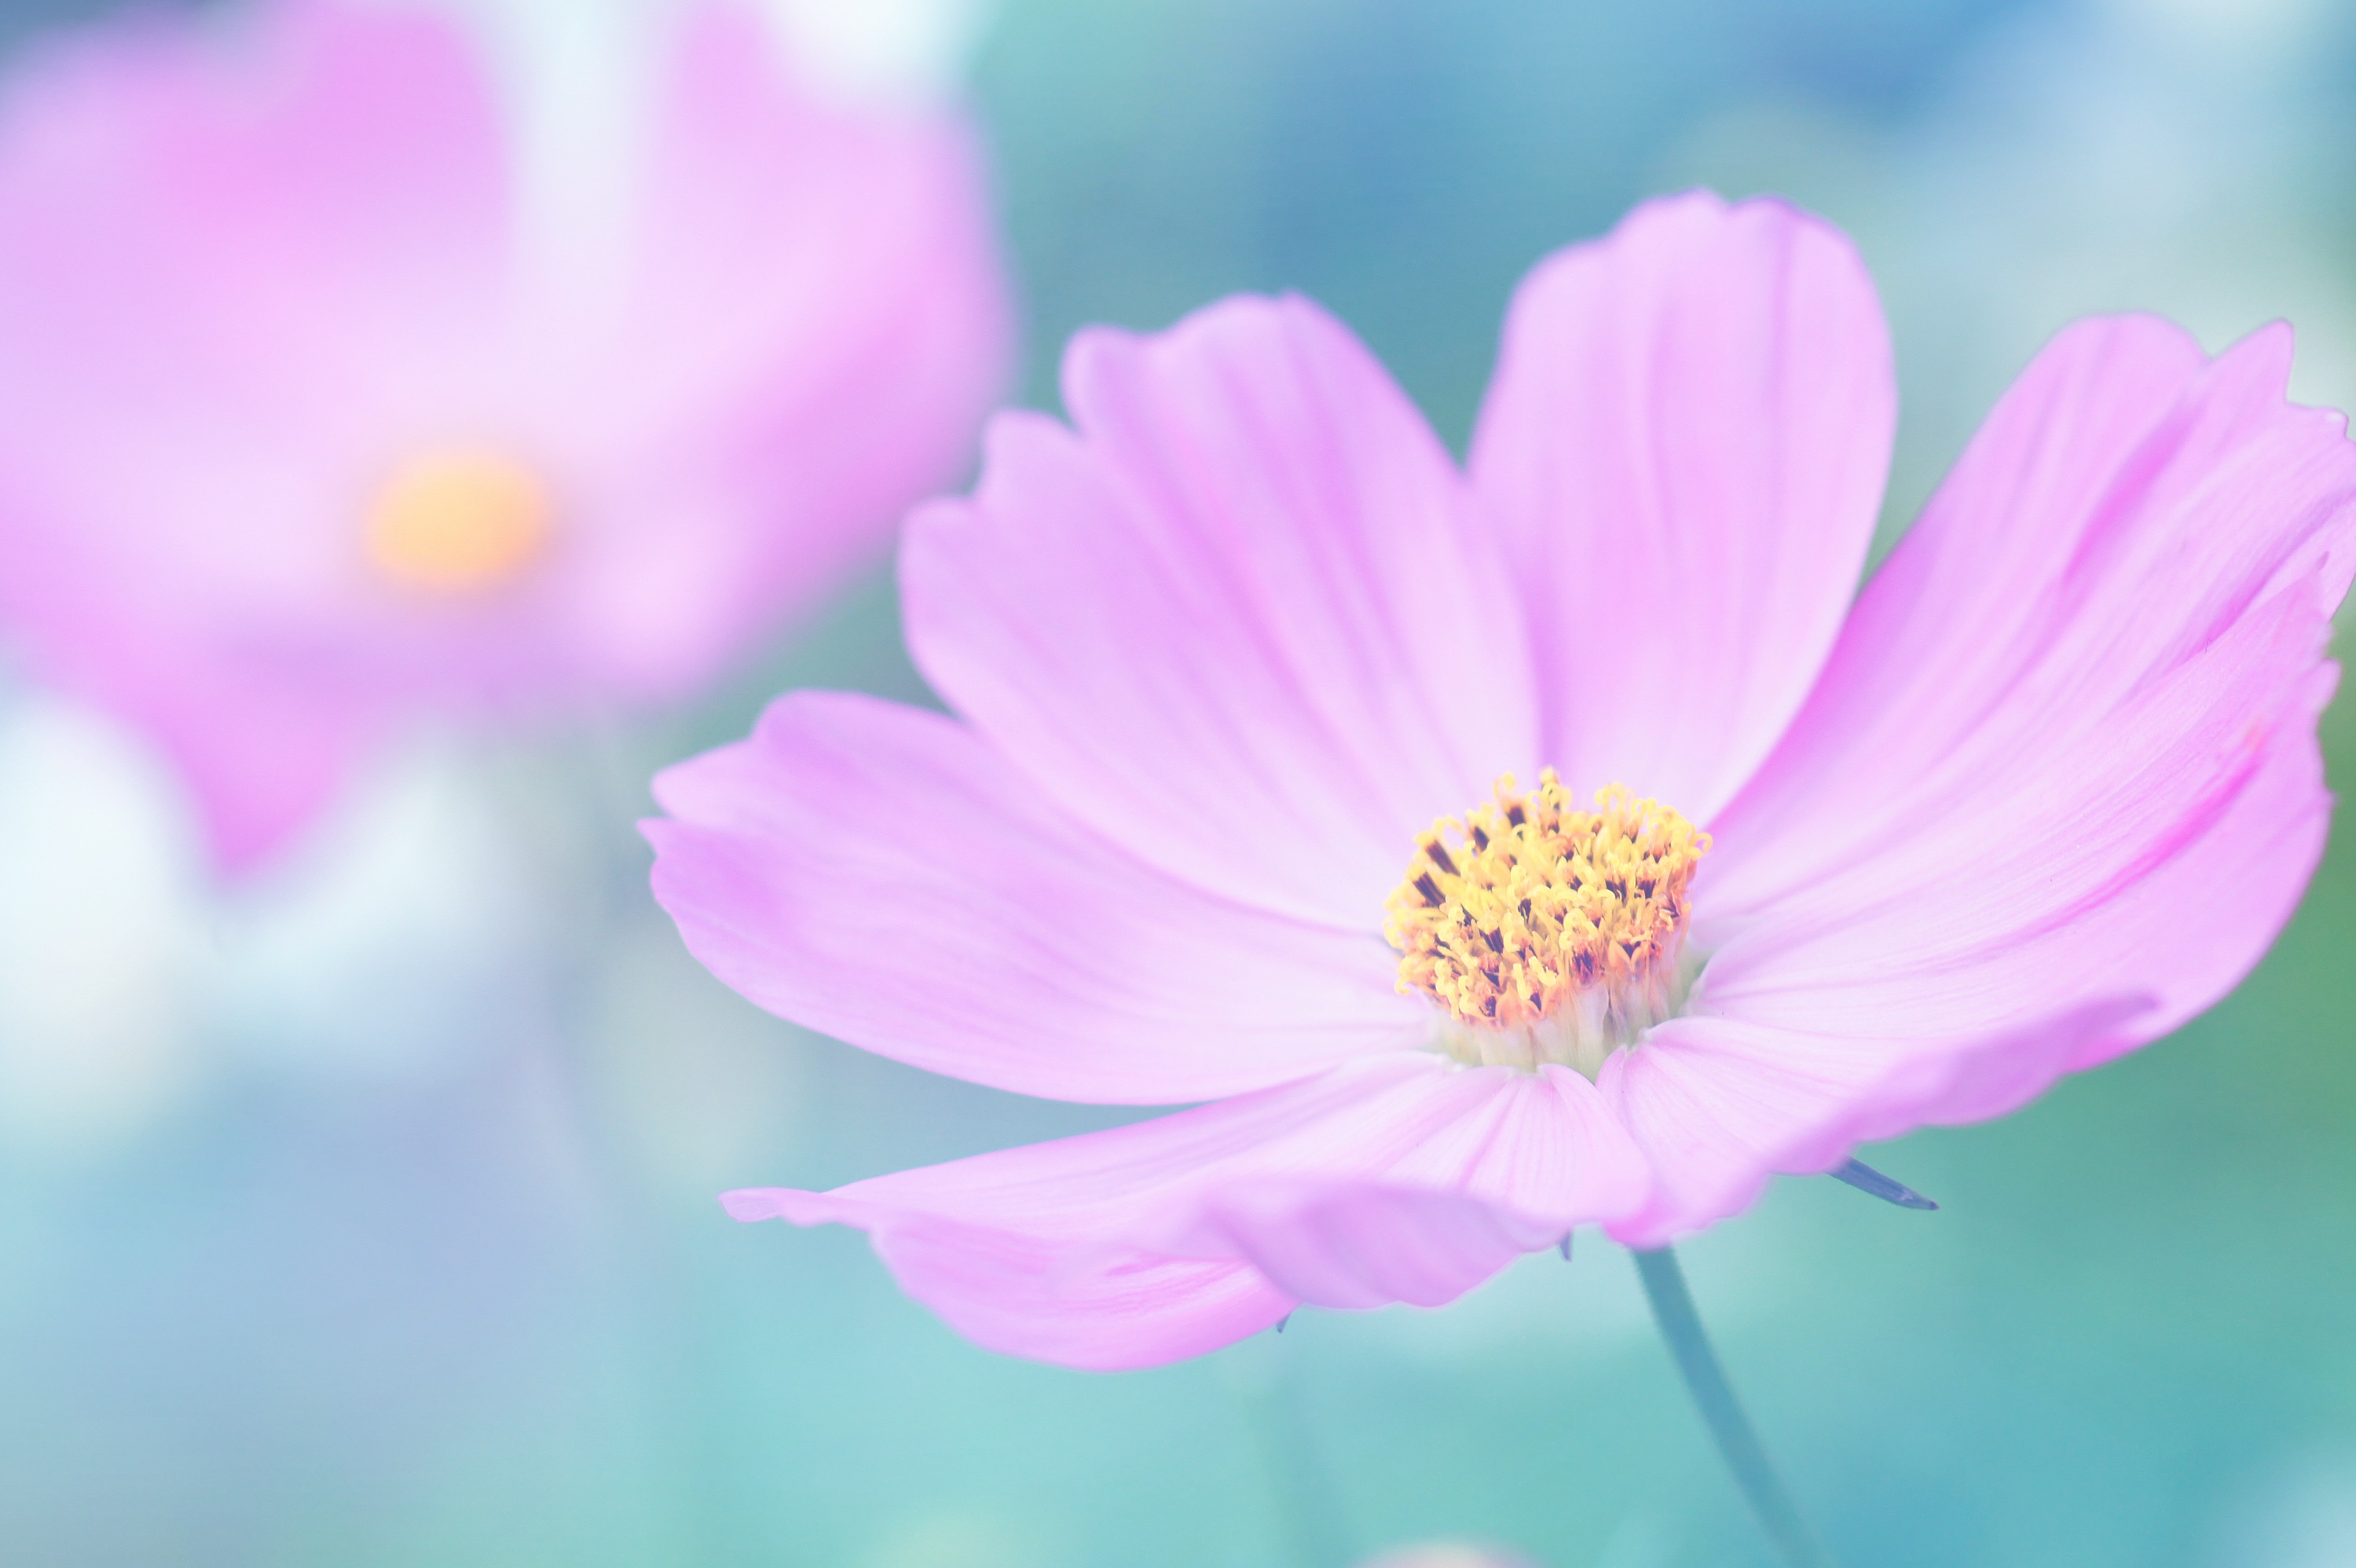 Blue Galaxy Hd Wallpaper Pink Petaled Flower During Daytime 183 Free Stock Photo